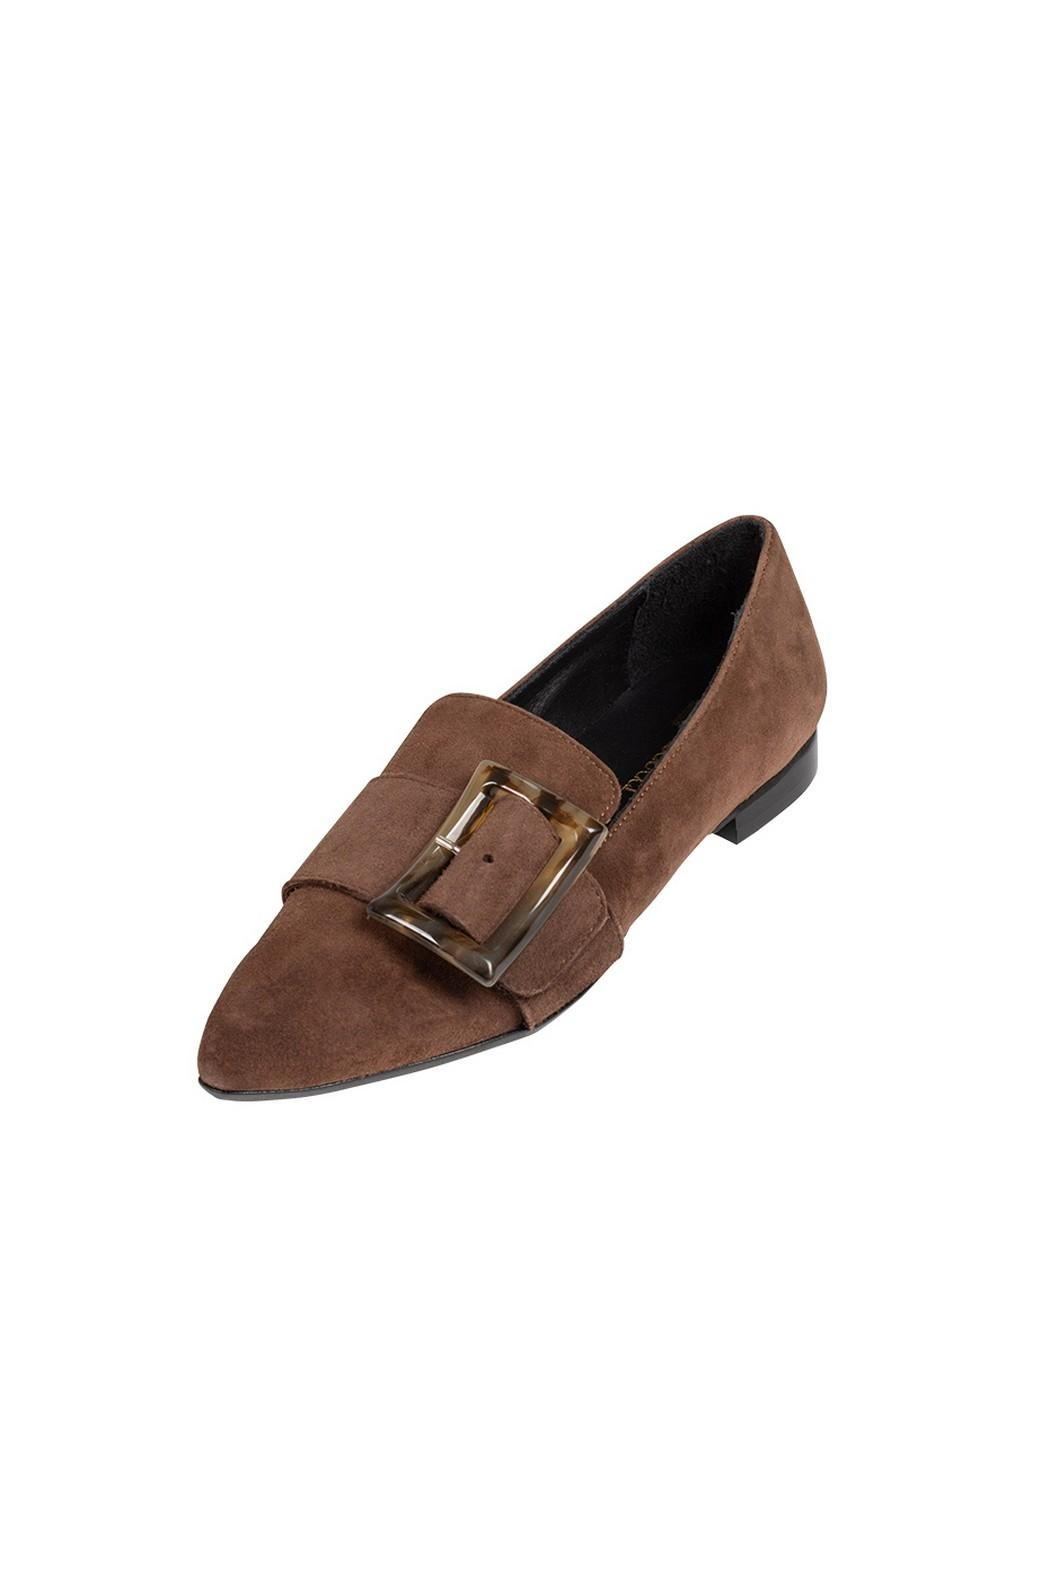 Pascucci Chocolate Suede Loafer - Front Full Image